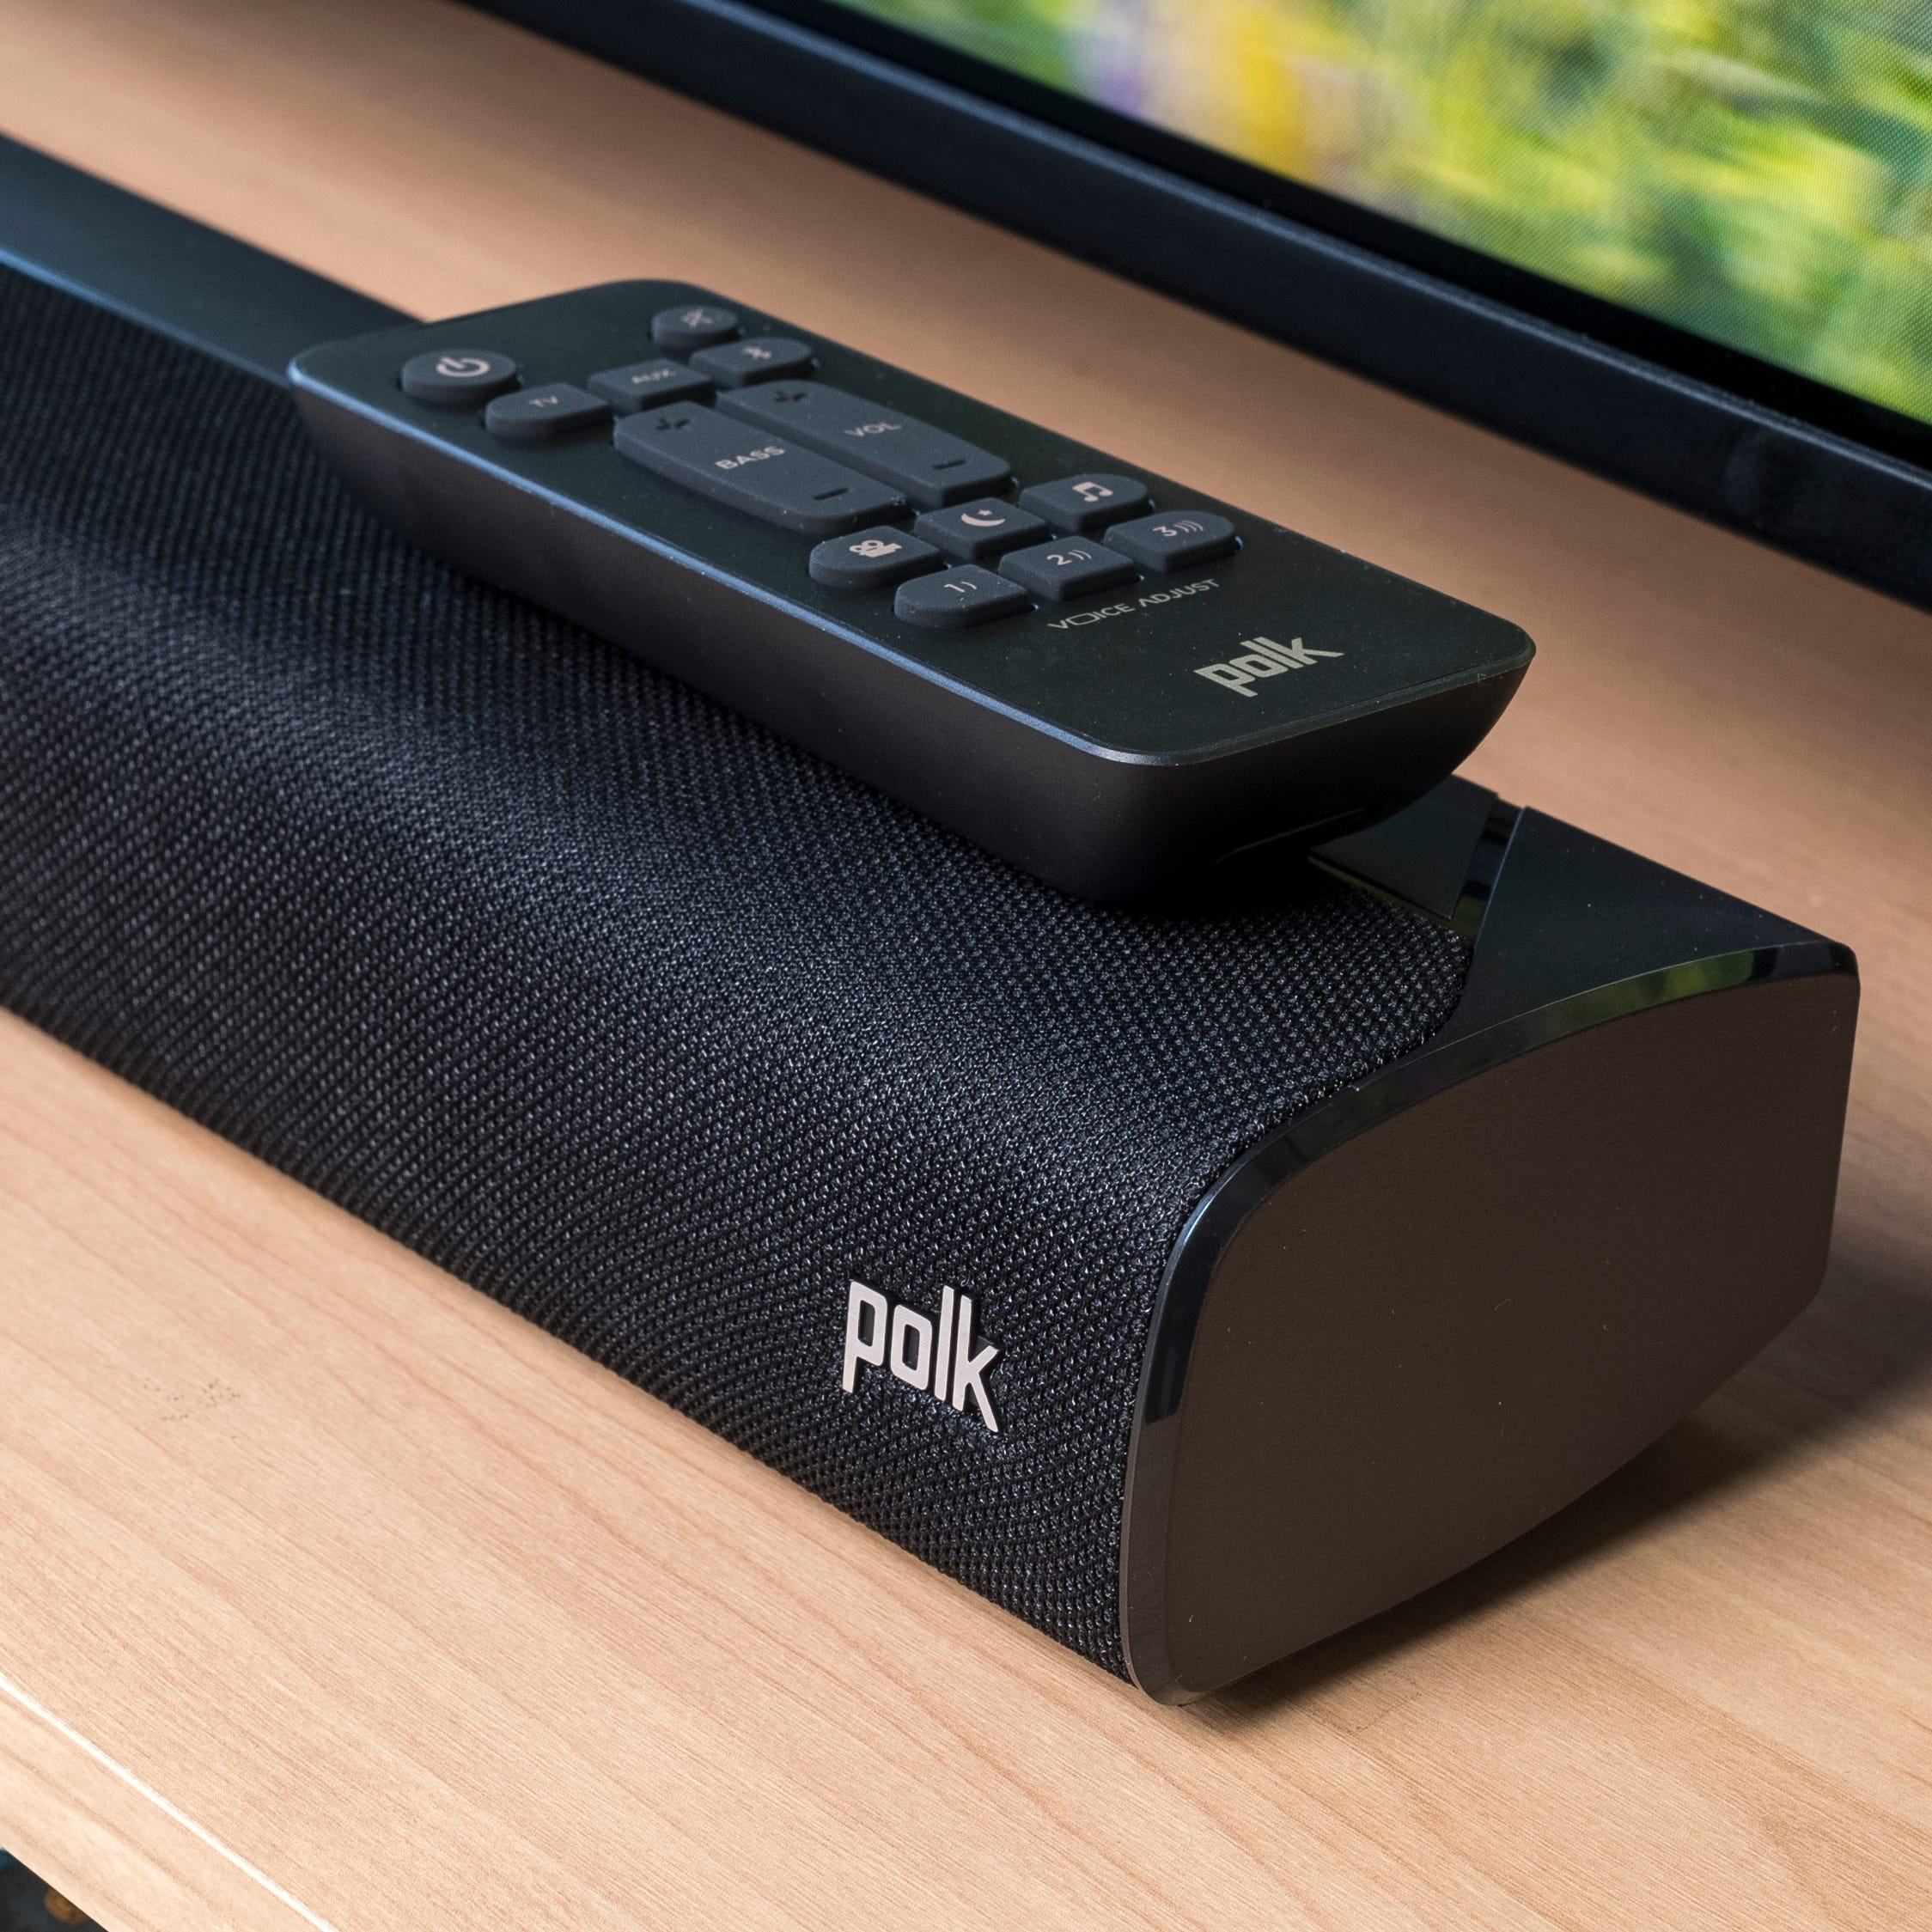 Finally, enjoy great sound on your TV without cranking up the volume.